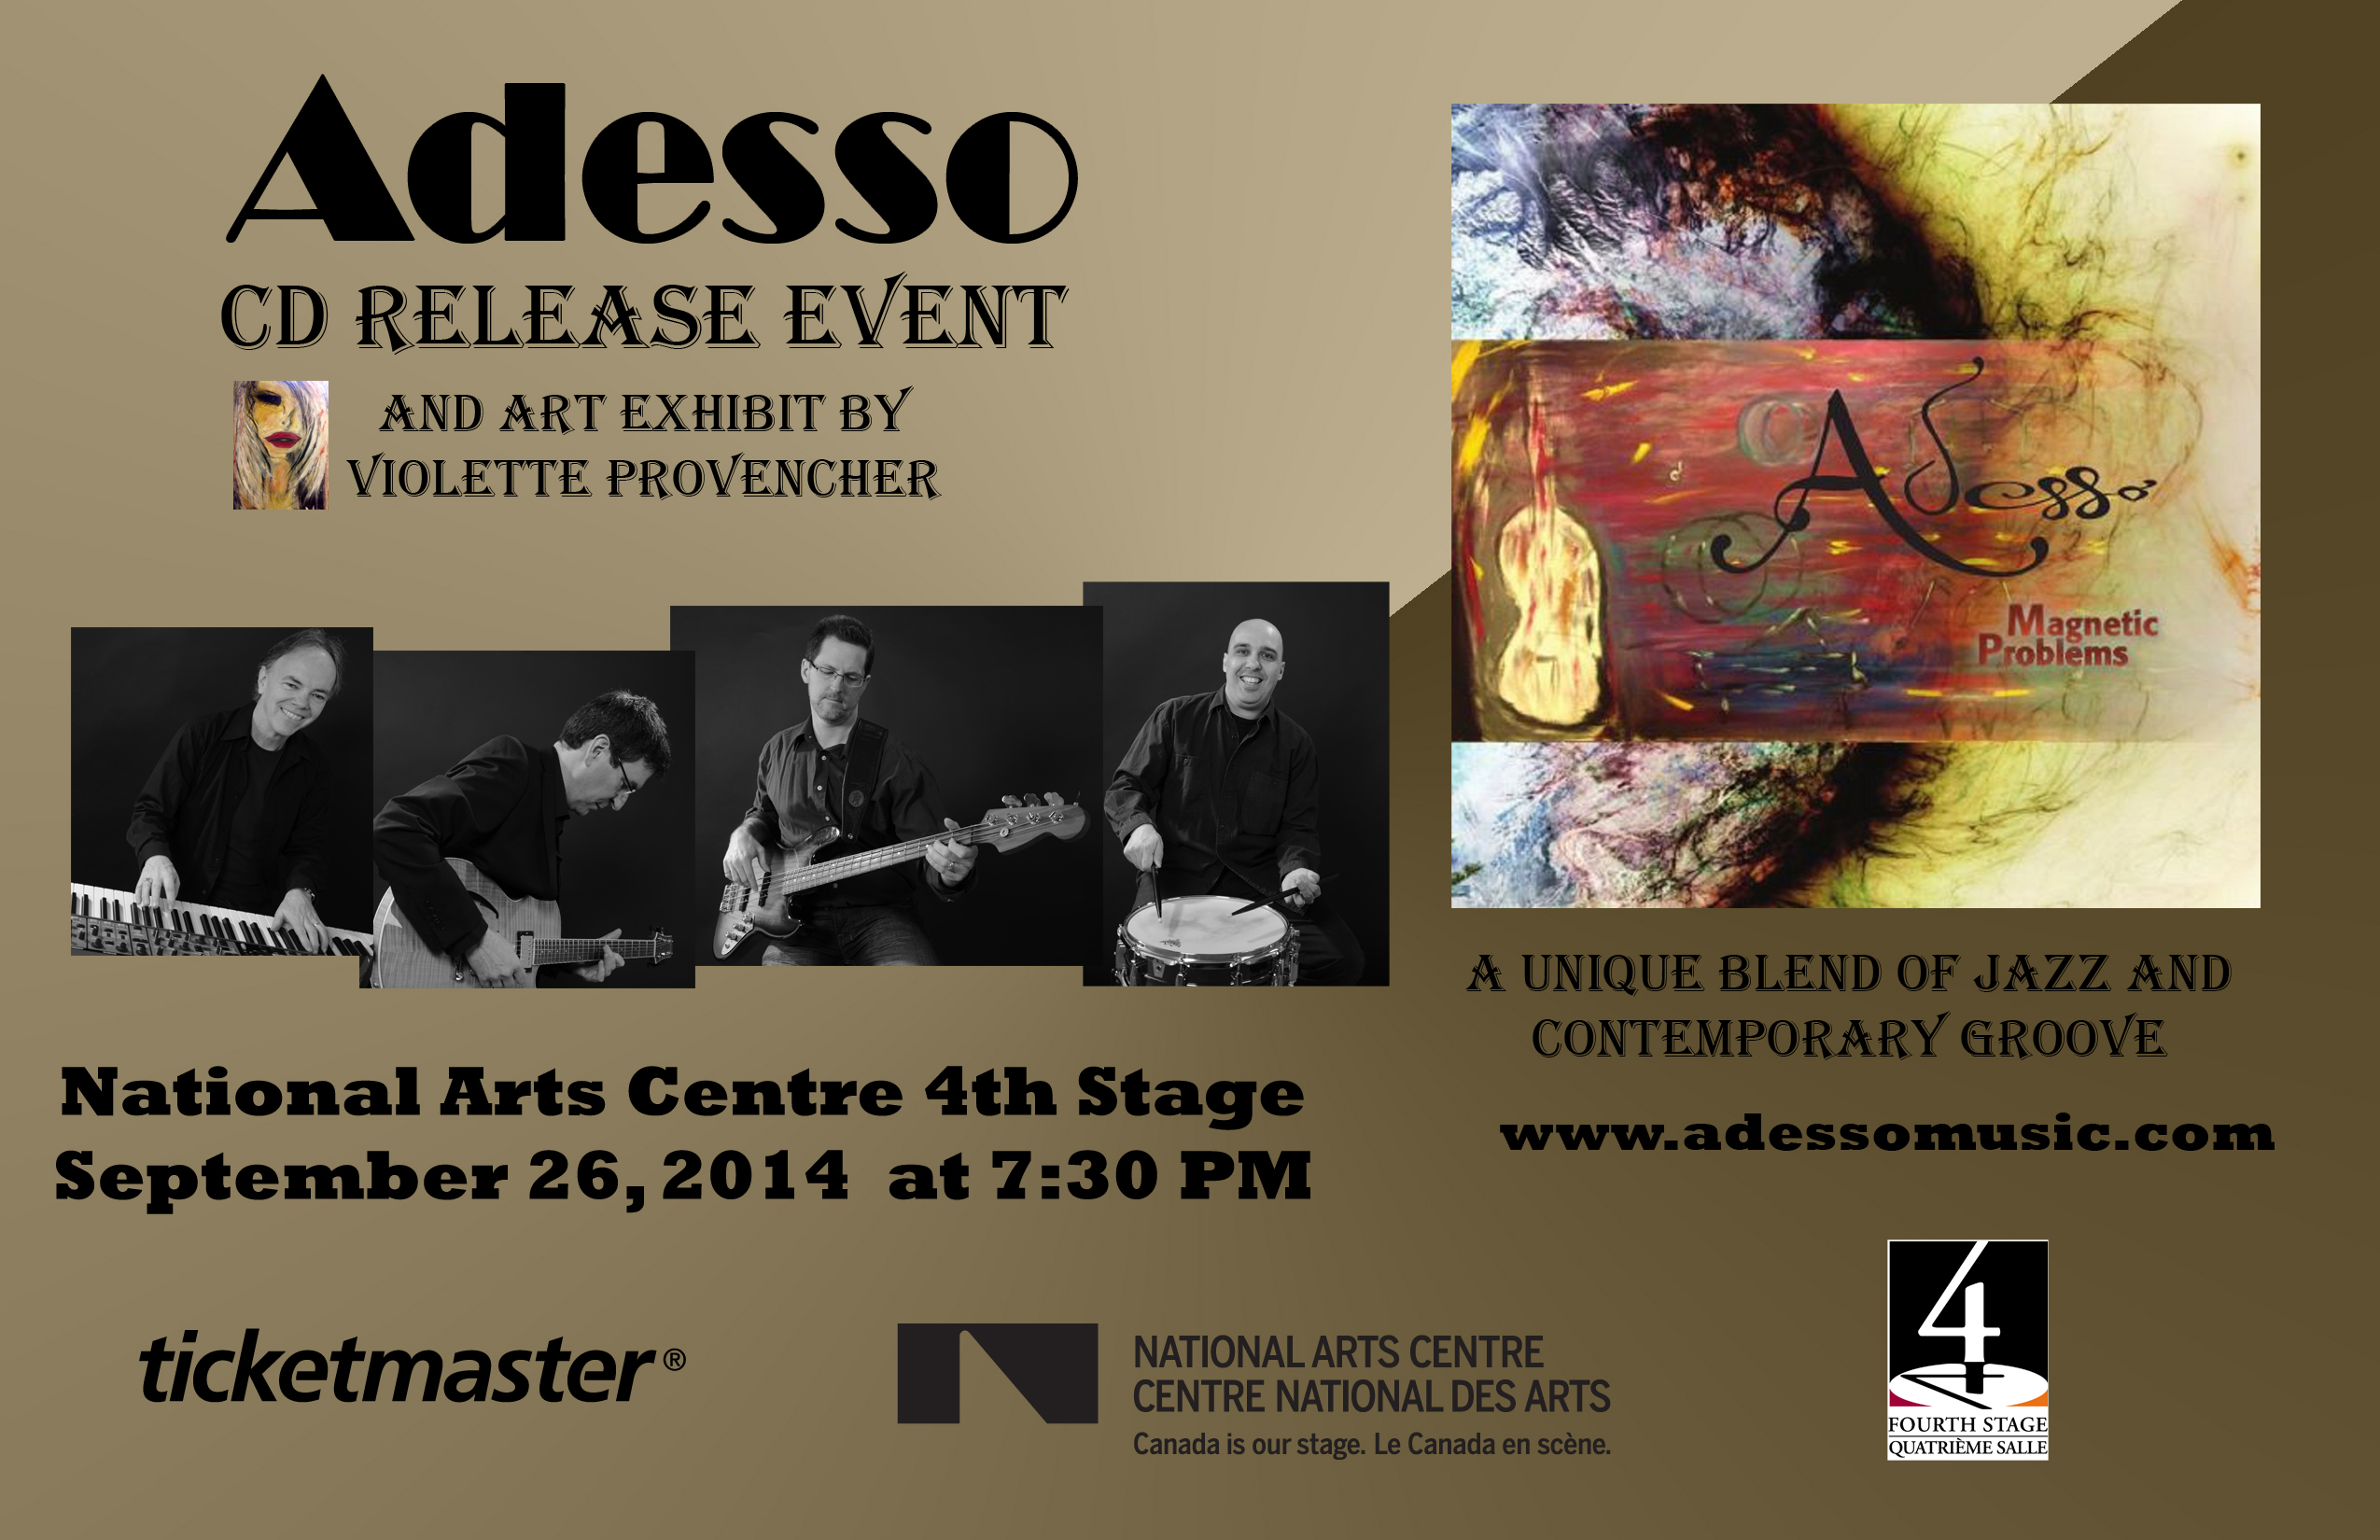 Adesso Flyer 3a